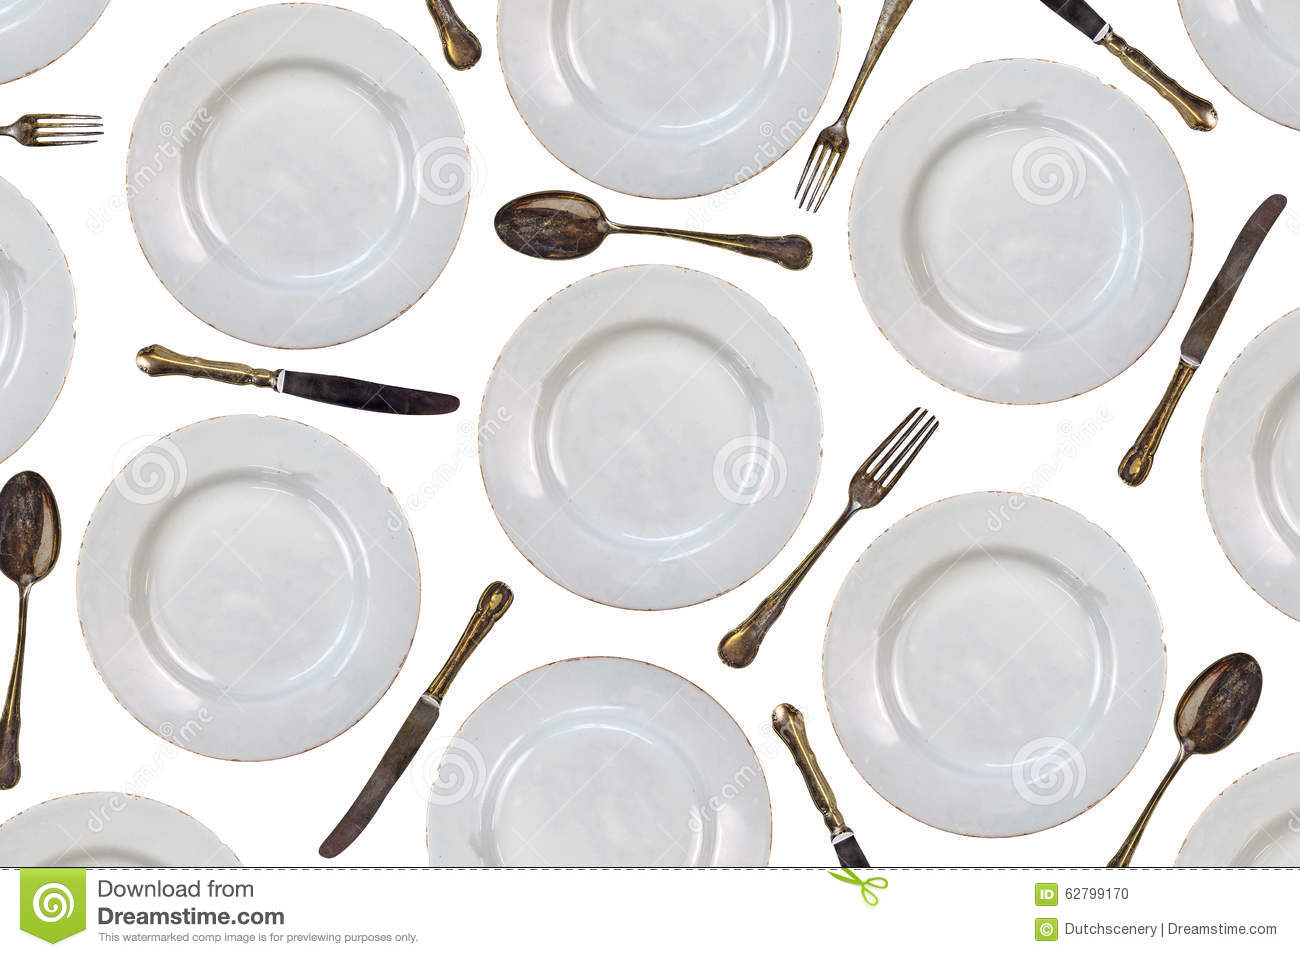 Royalty-Free Stock Photo  sc 1 st  Dreamstime.com & Pattern Of Vintage Dinner Plates Knives Forks And Spoons Stock ...